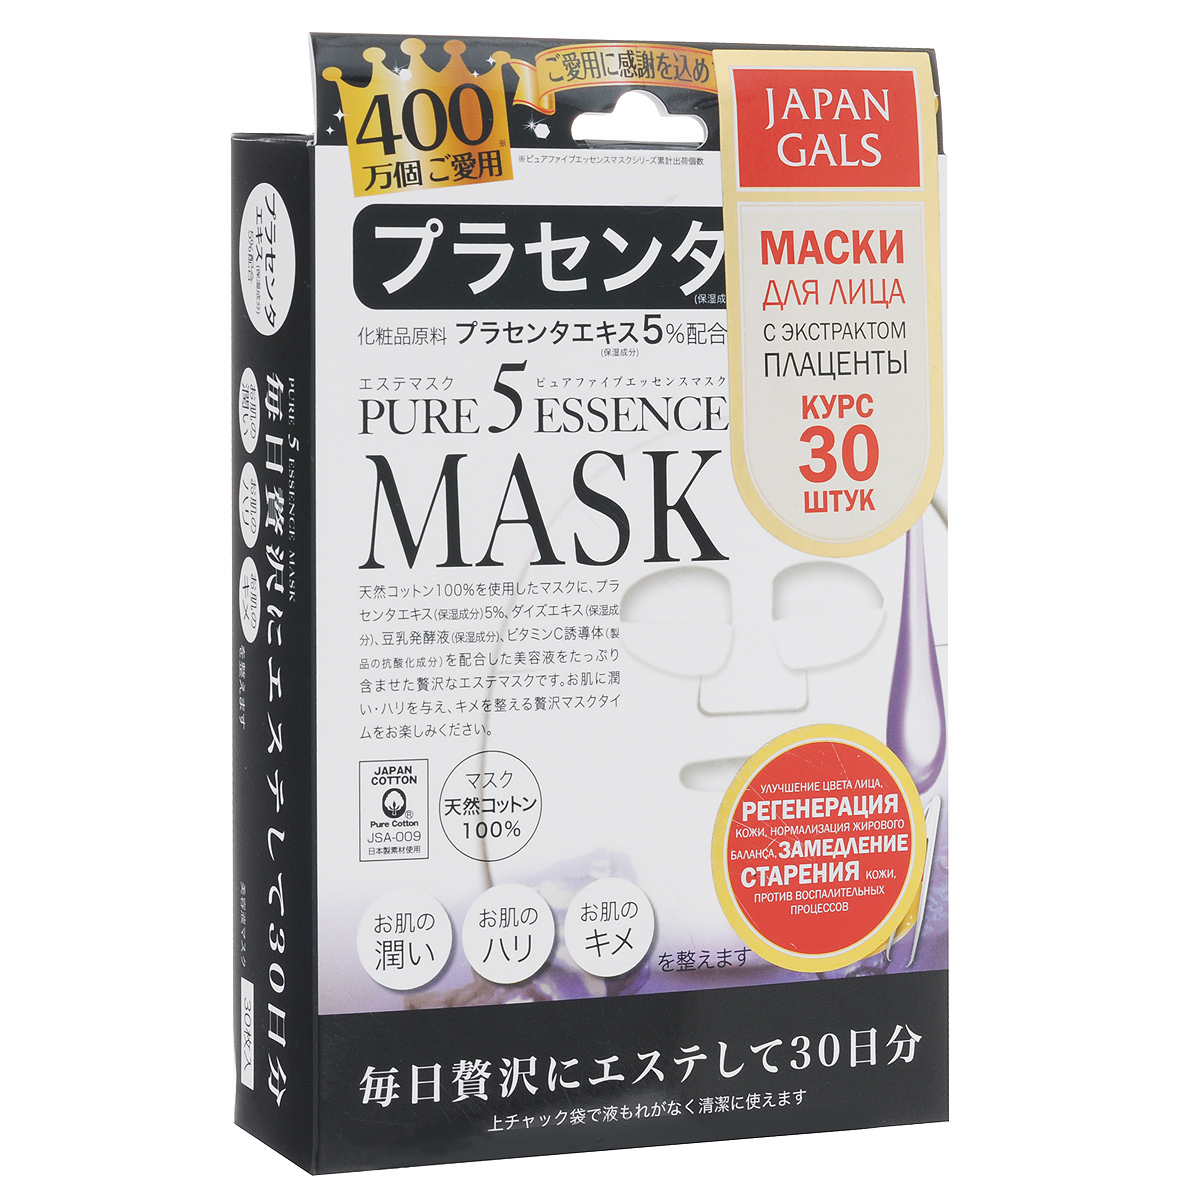 Japan Gals Маска для лица Pure5 Essential Placenta, с экстрактом плаценты, 30 шт